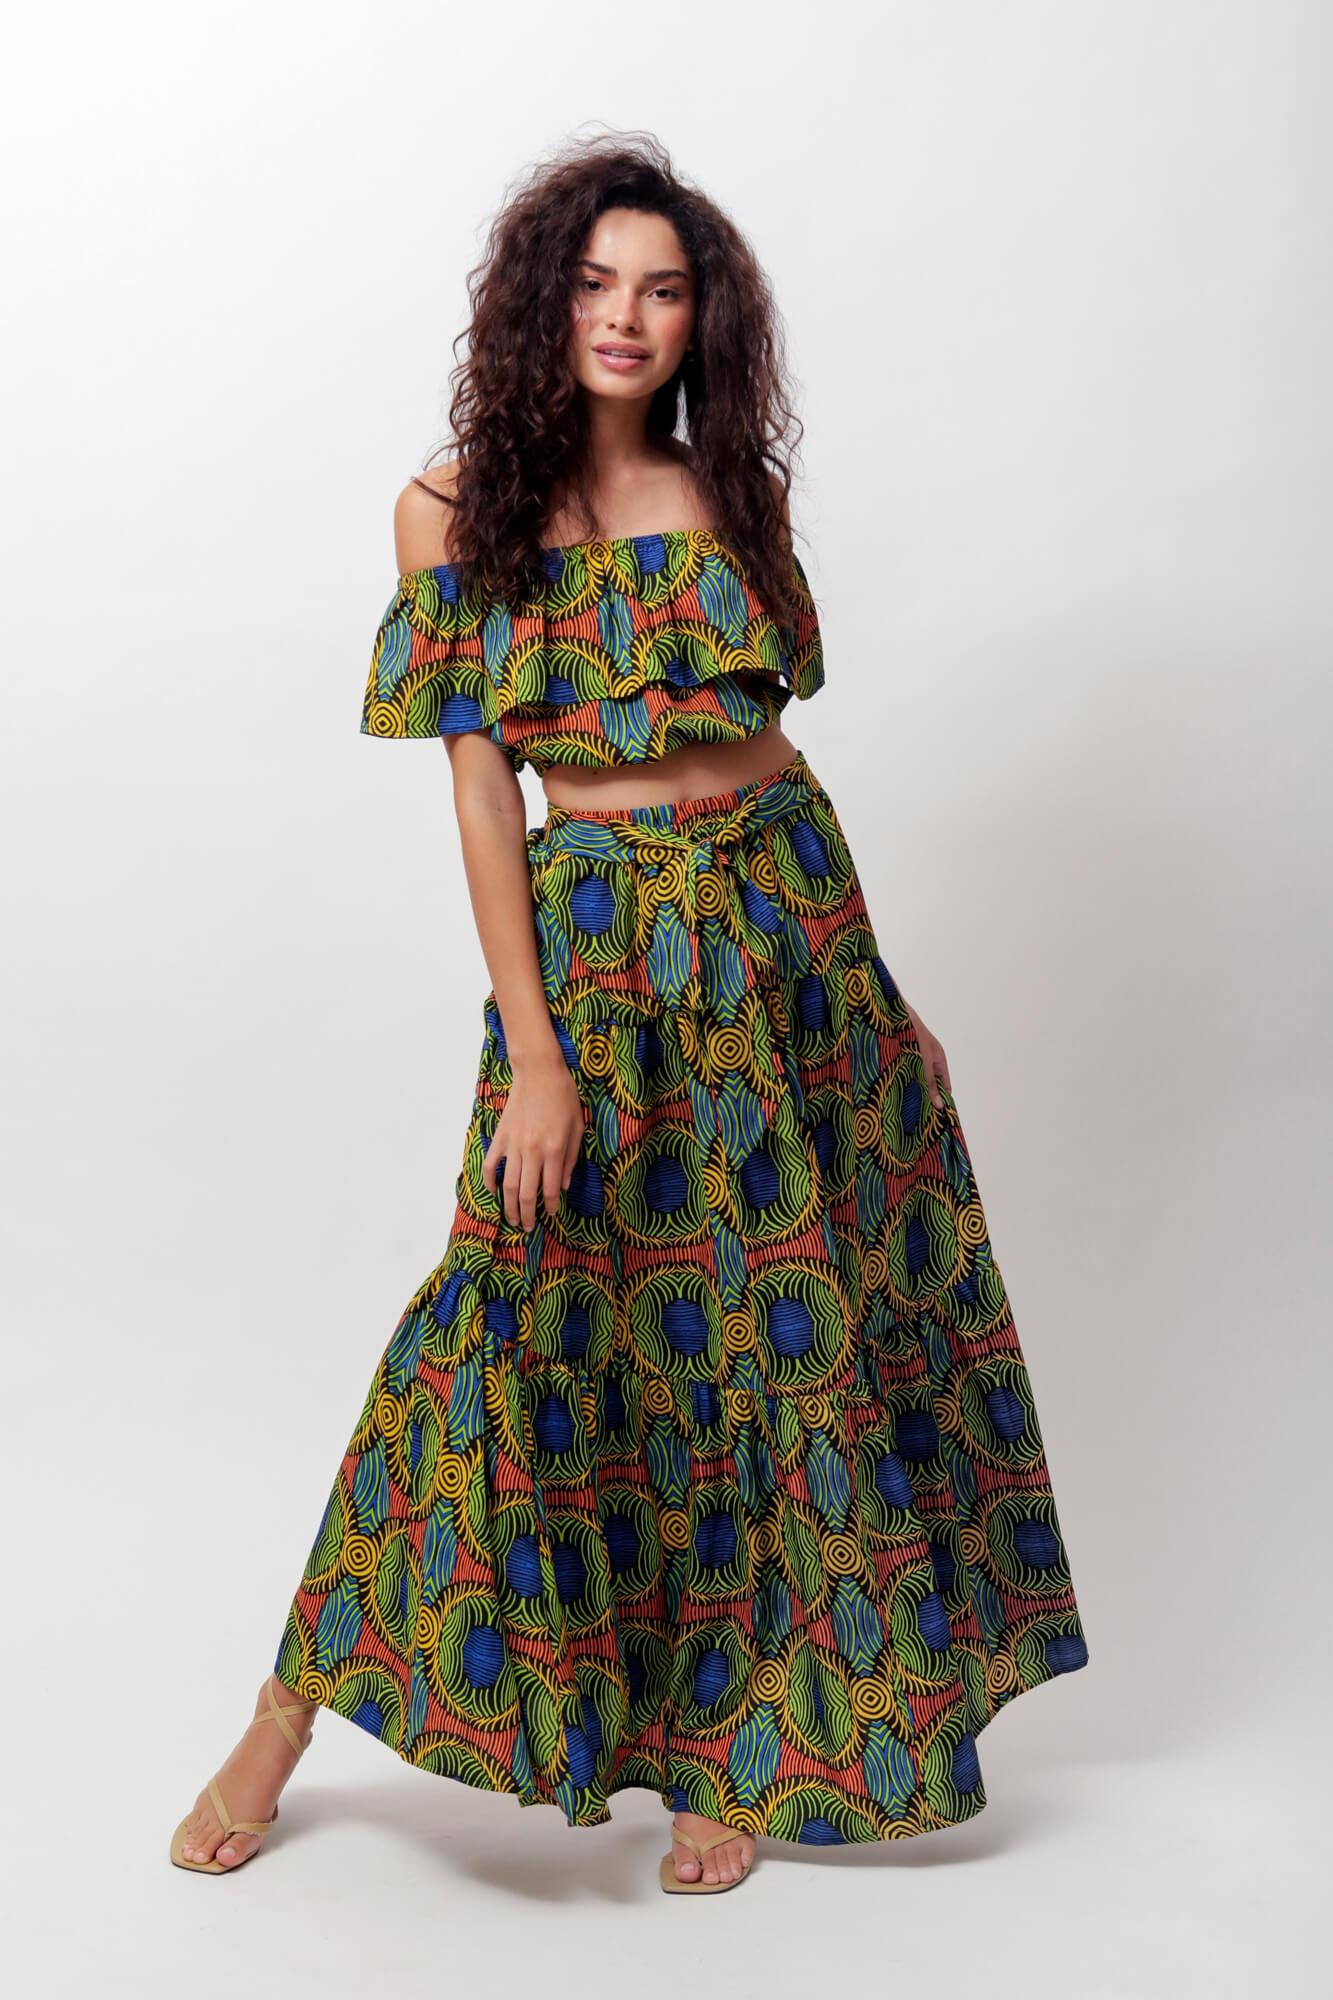 Nyla Crop Top and Skirt Two Piece Set